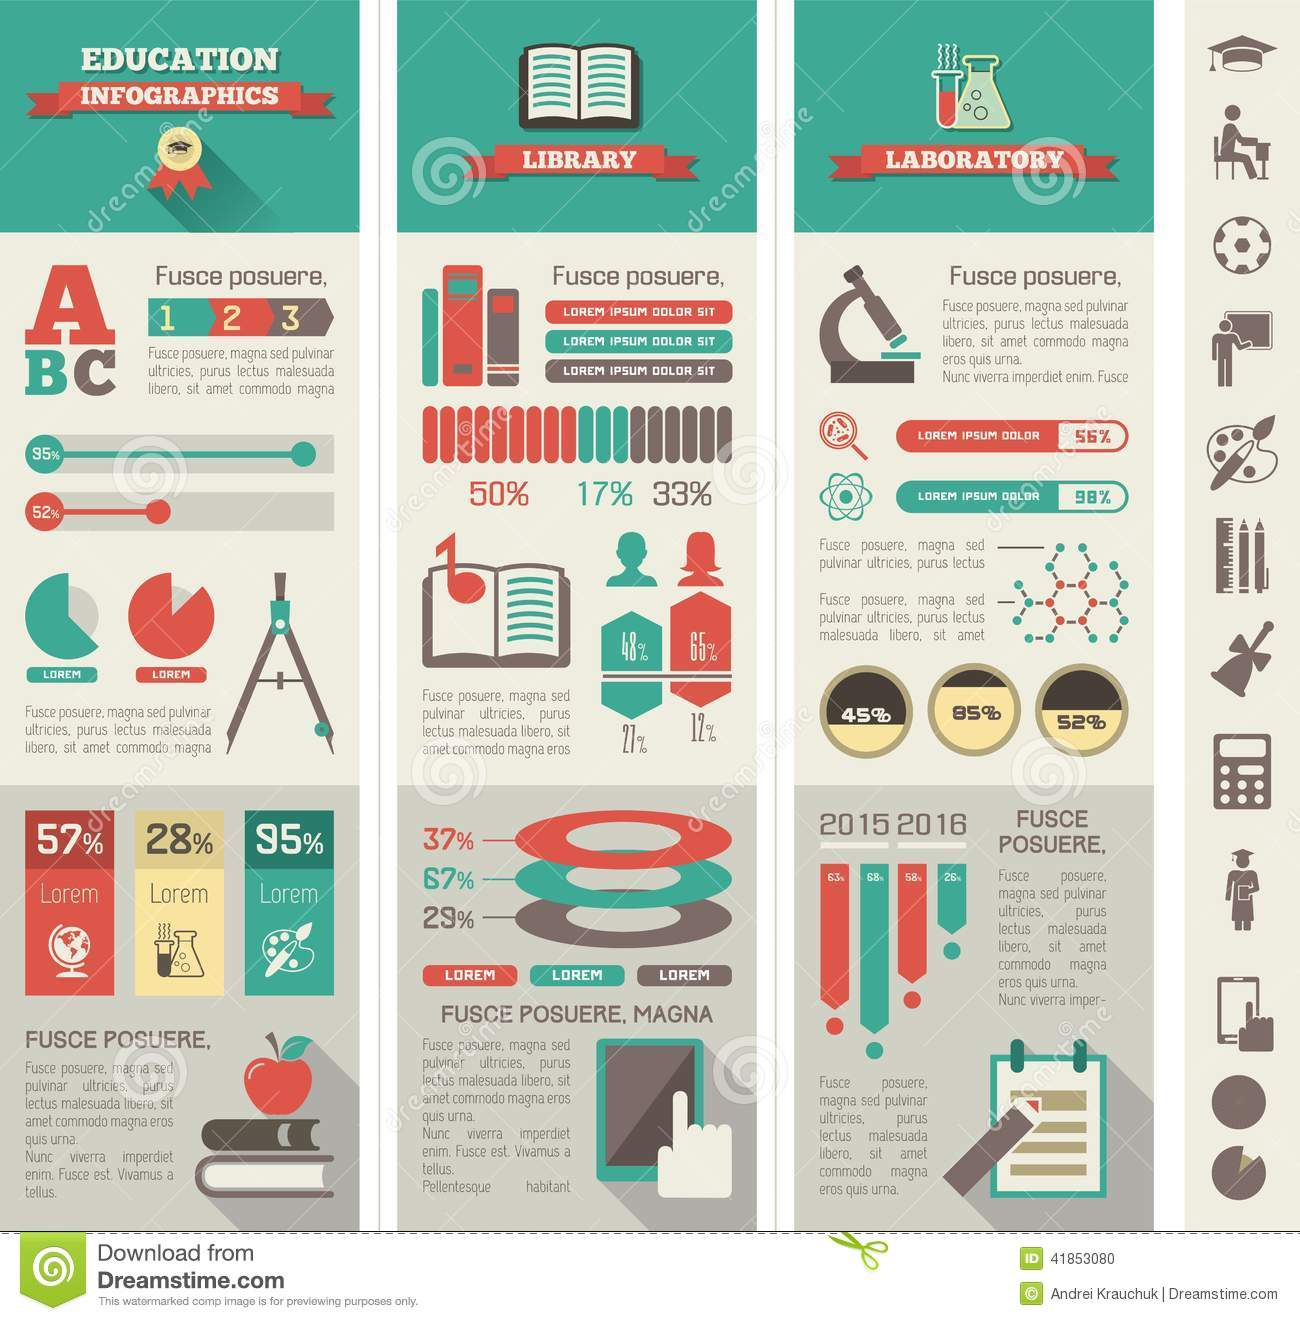 education-infographics-infographic-elements-plus-icon-set-vector-41853080.jpg